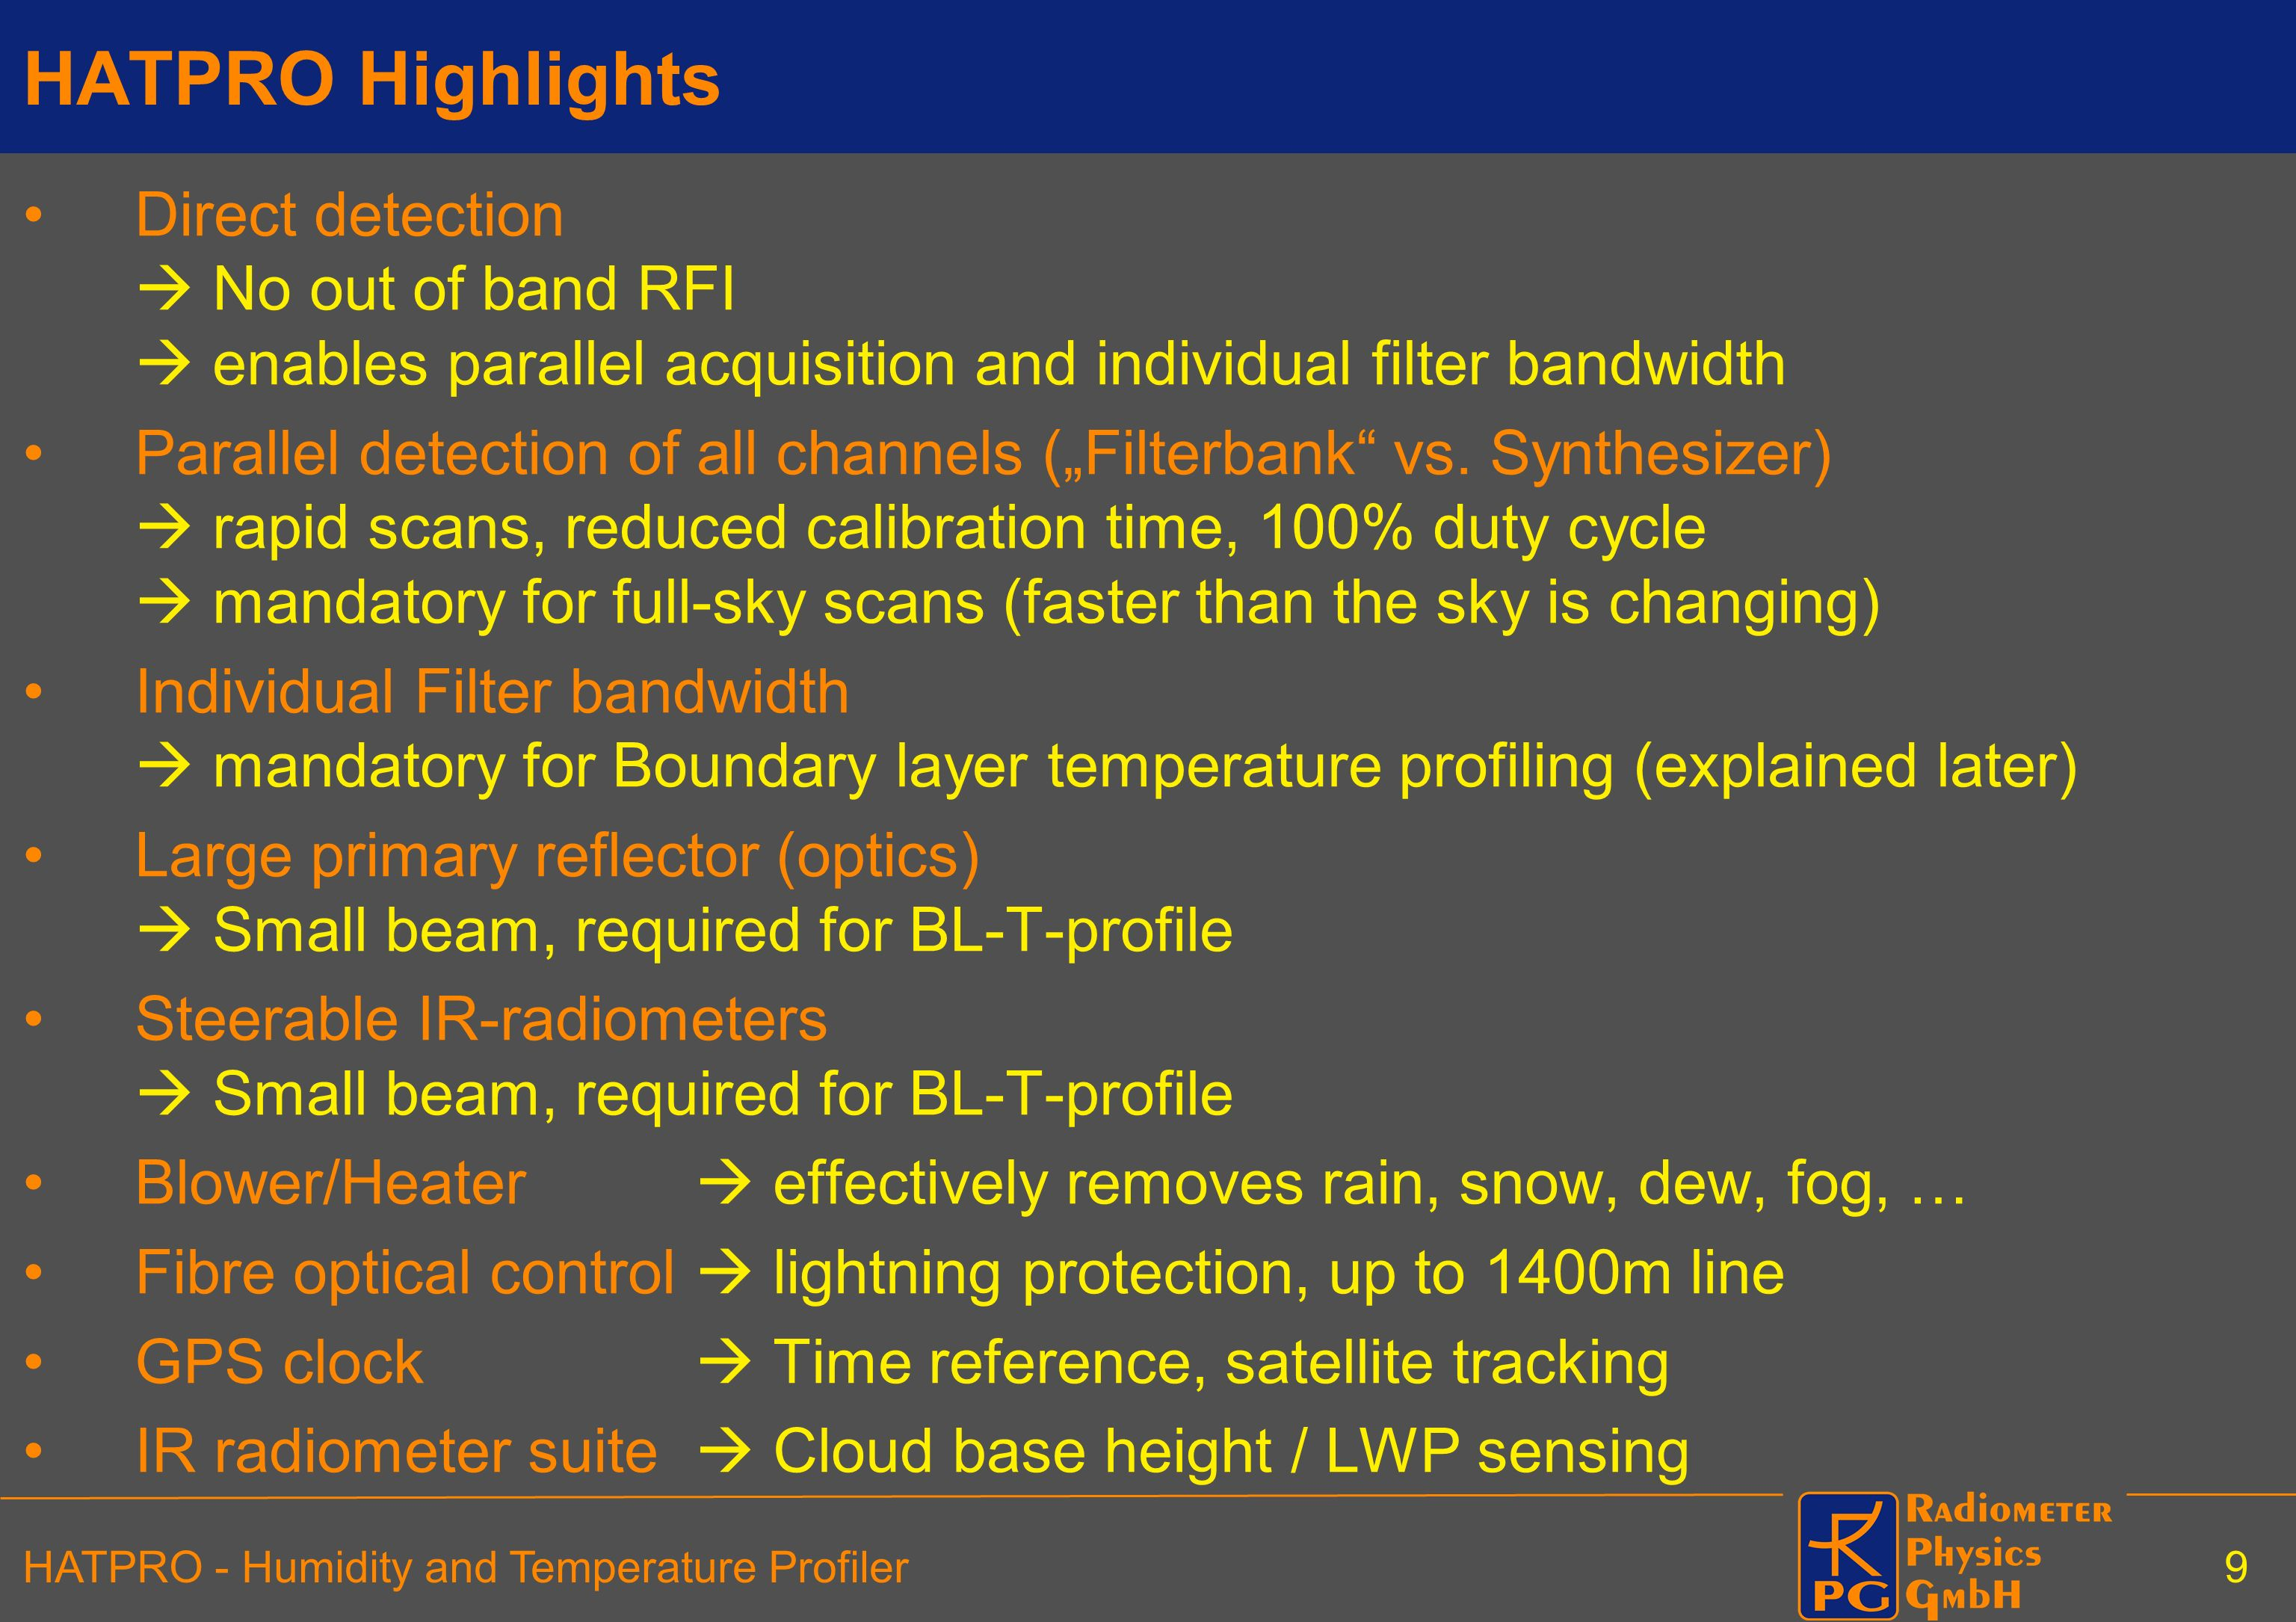 HATPRO Highlights Direct detection  No out of band RFI  enables parallel acquisition and individual filter bandwidth.